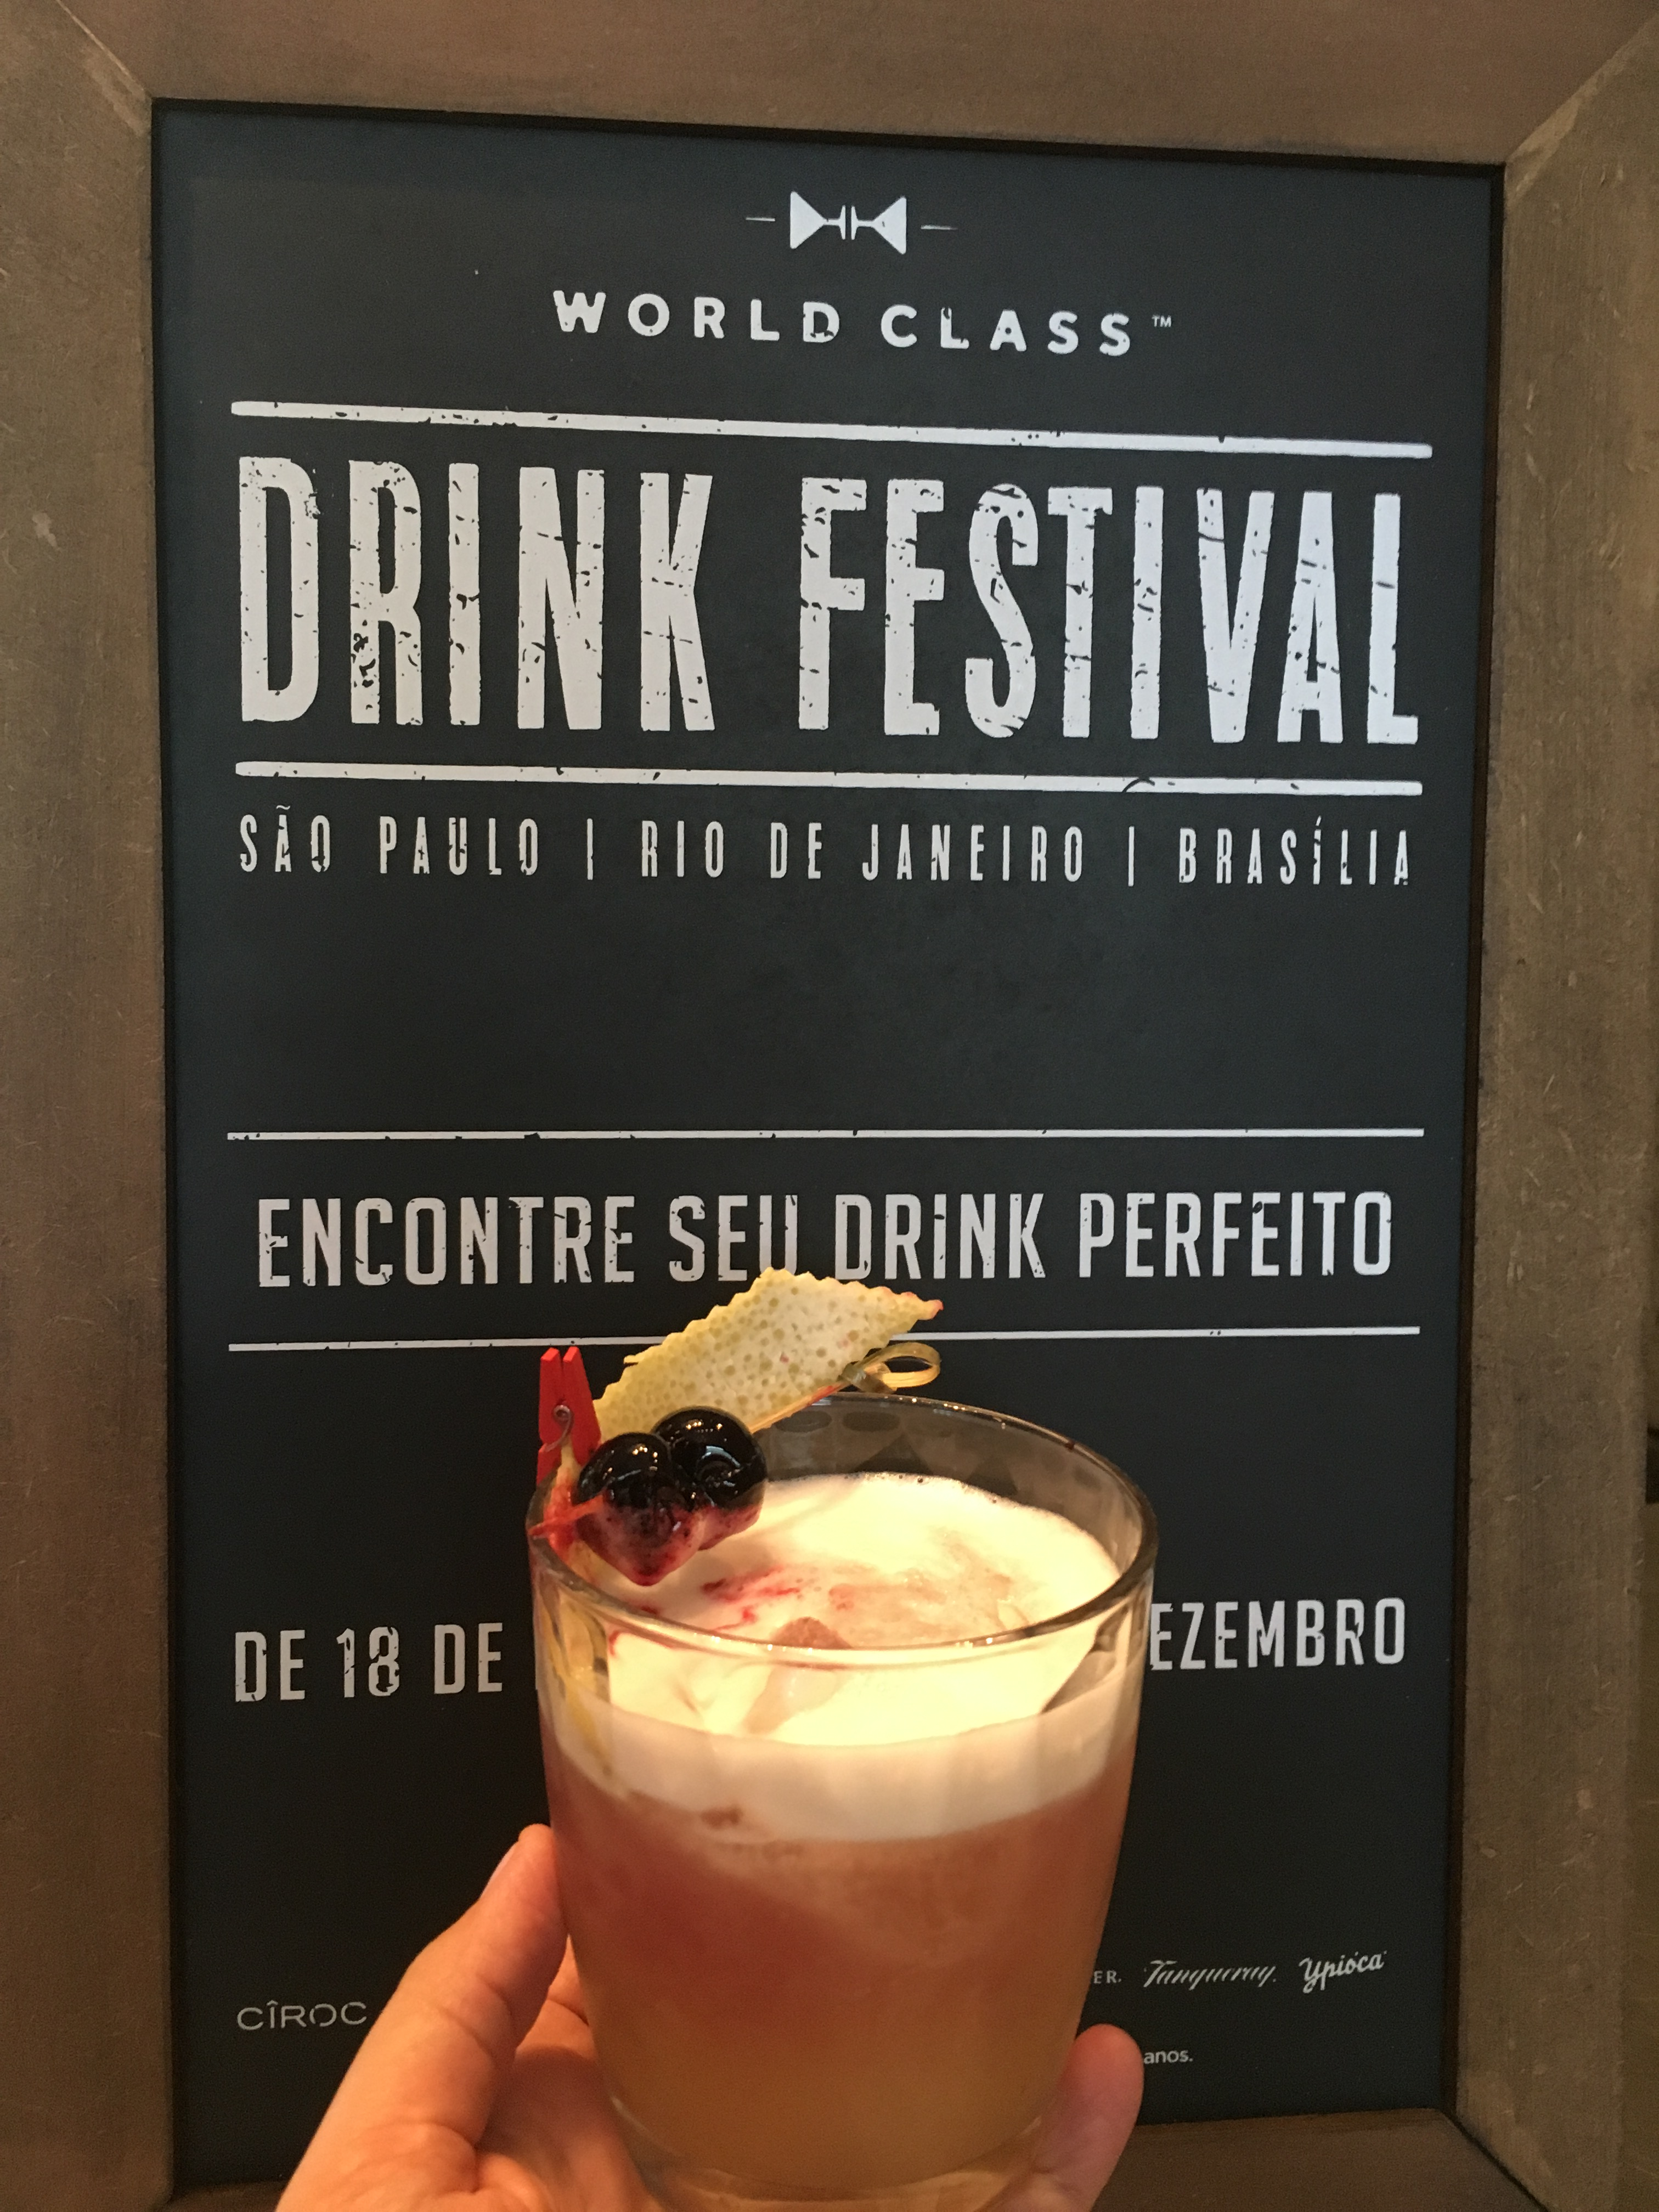 World Class Drink Festival 2016